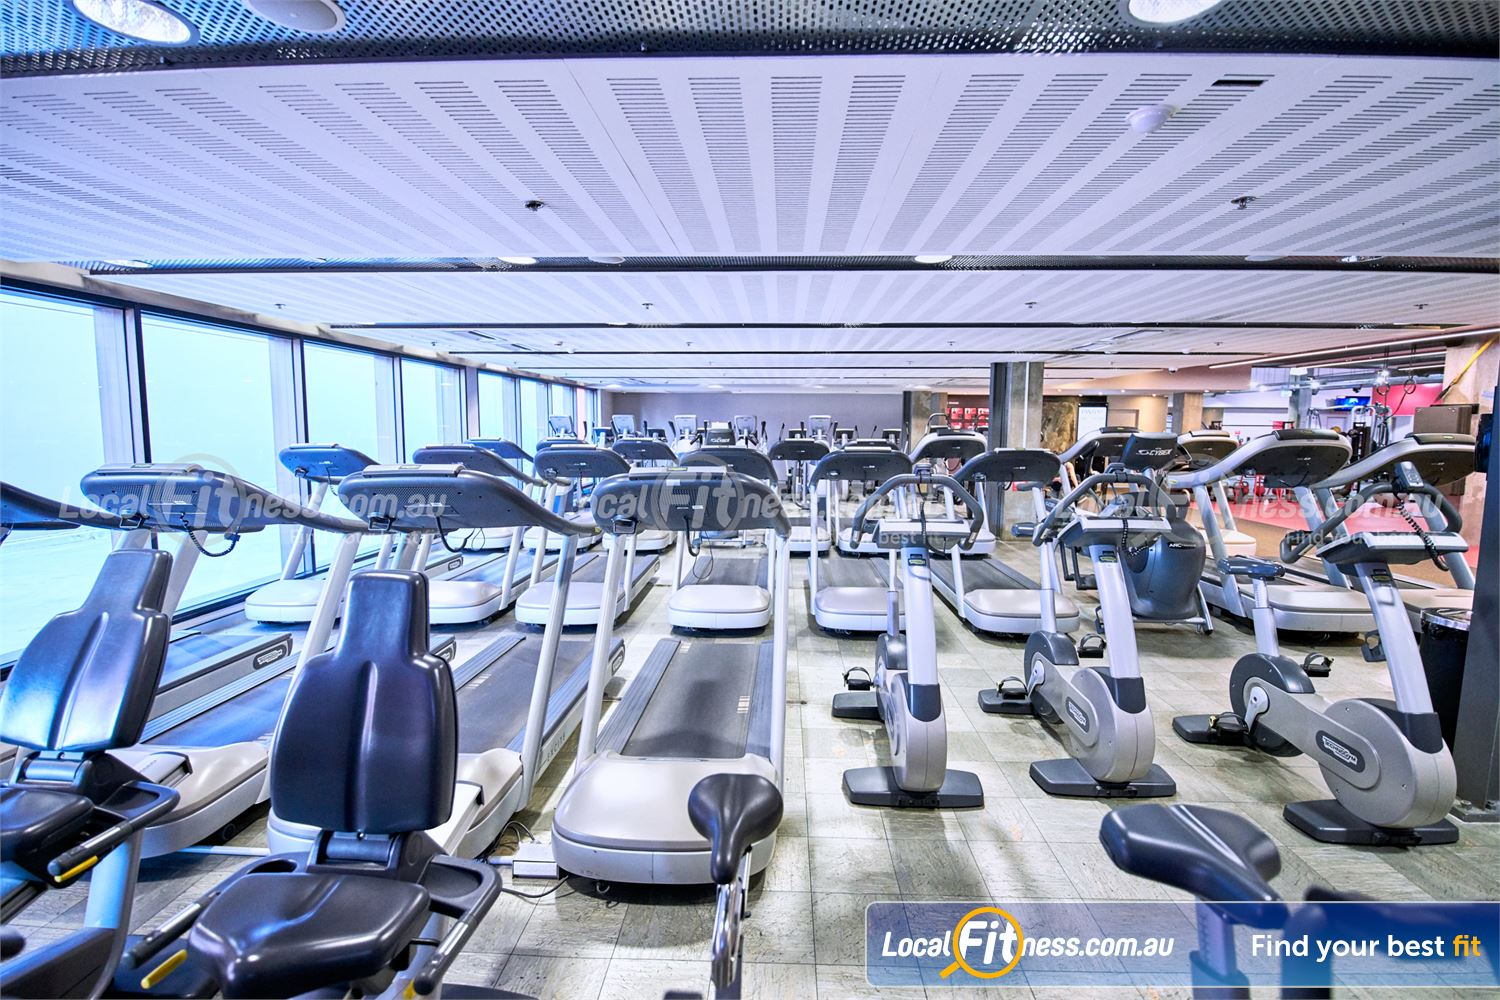 Fitness First Victoria Gardens Richmond Treadmills, cross trainers, cycle bikes and more.